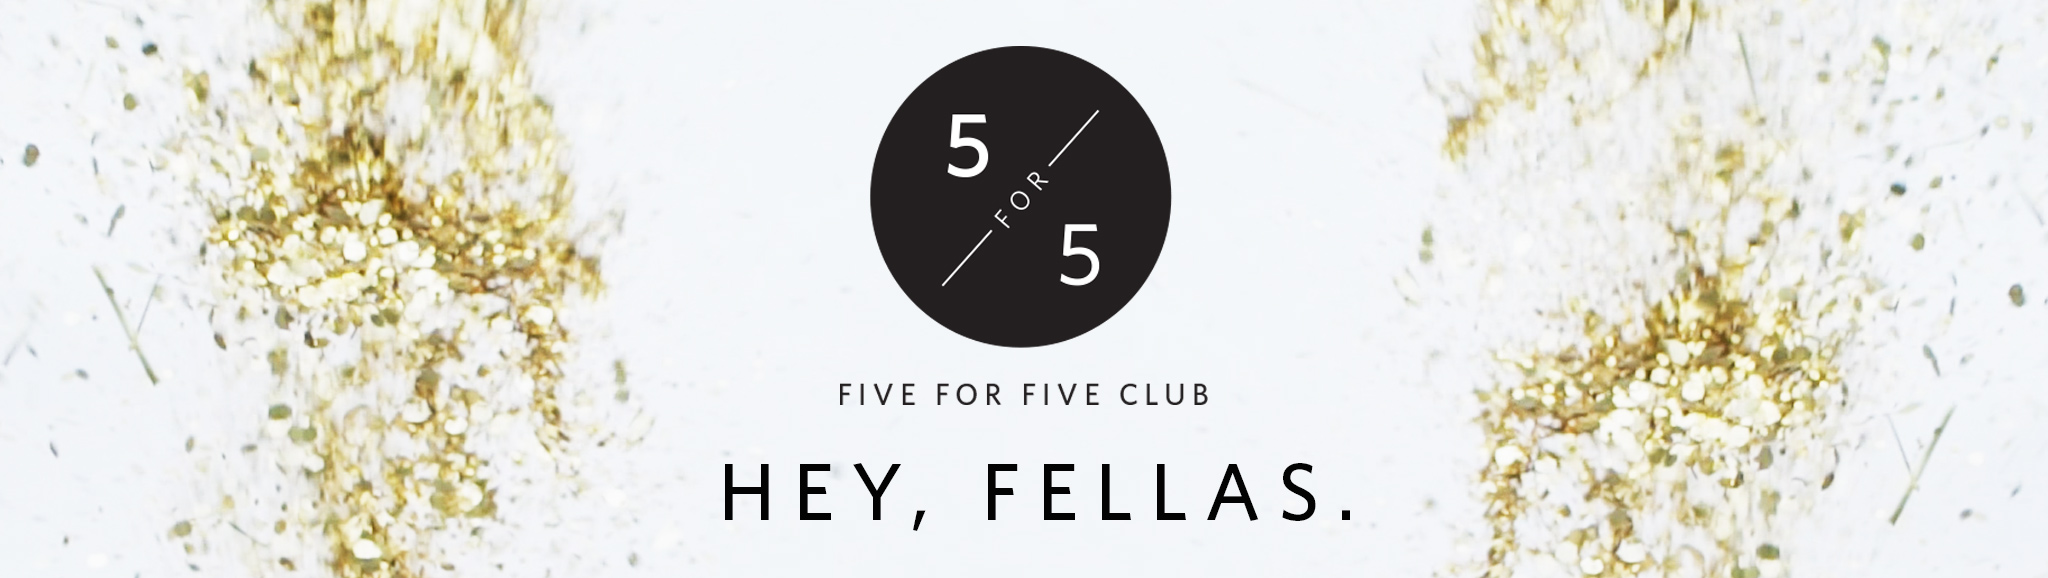 Shop Men's 5 for 5 Shoes - Nisolo